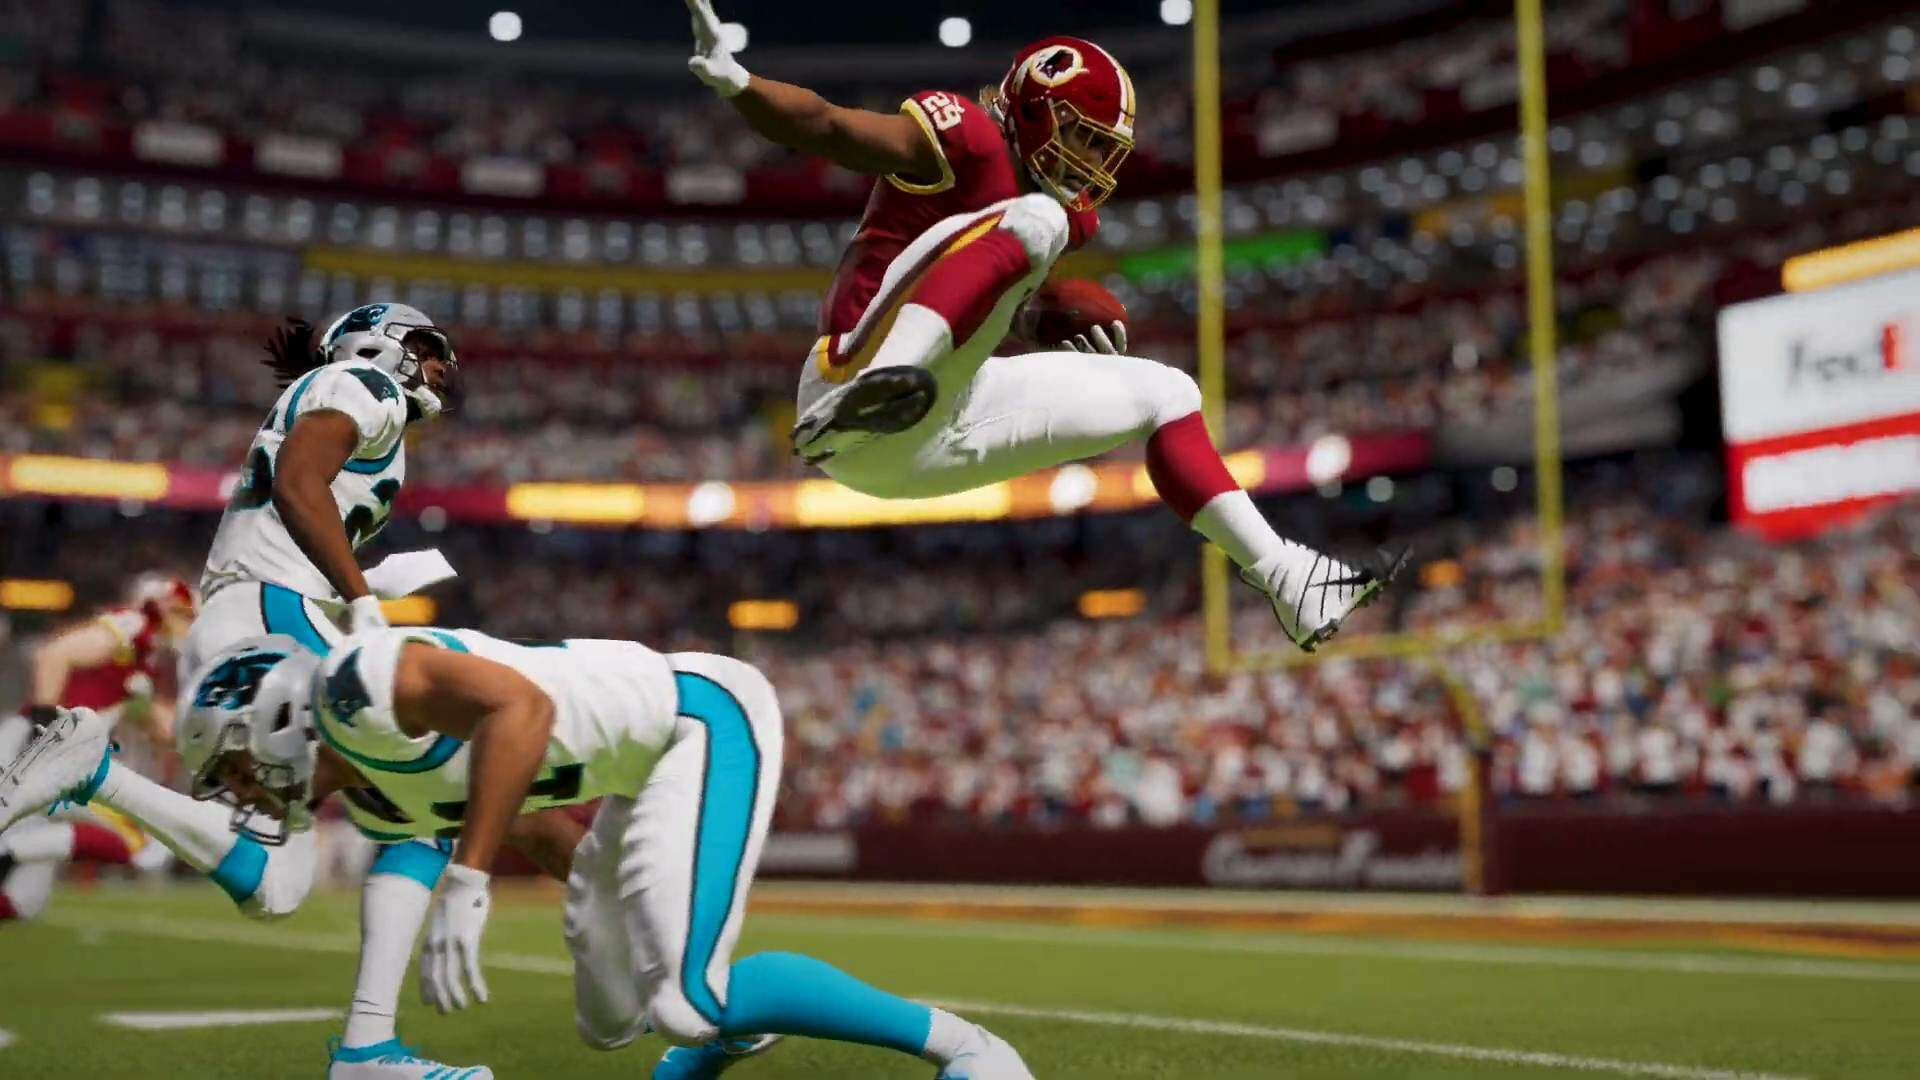 New Madden 21 Gameplay Trailer Details All the Ways It Will Fix the Overpowered Running Game